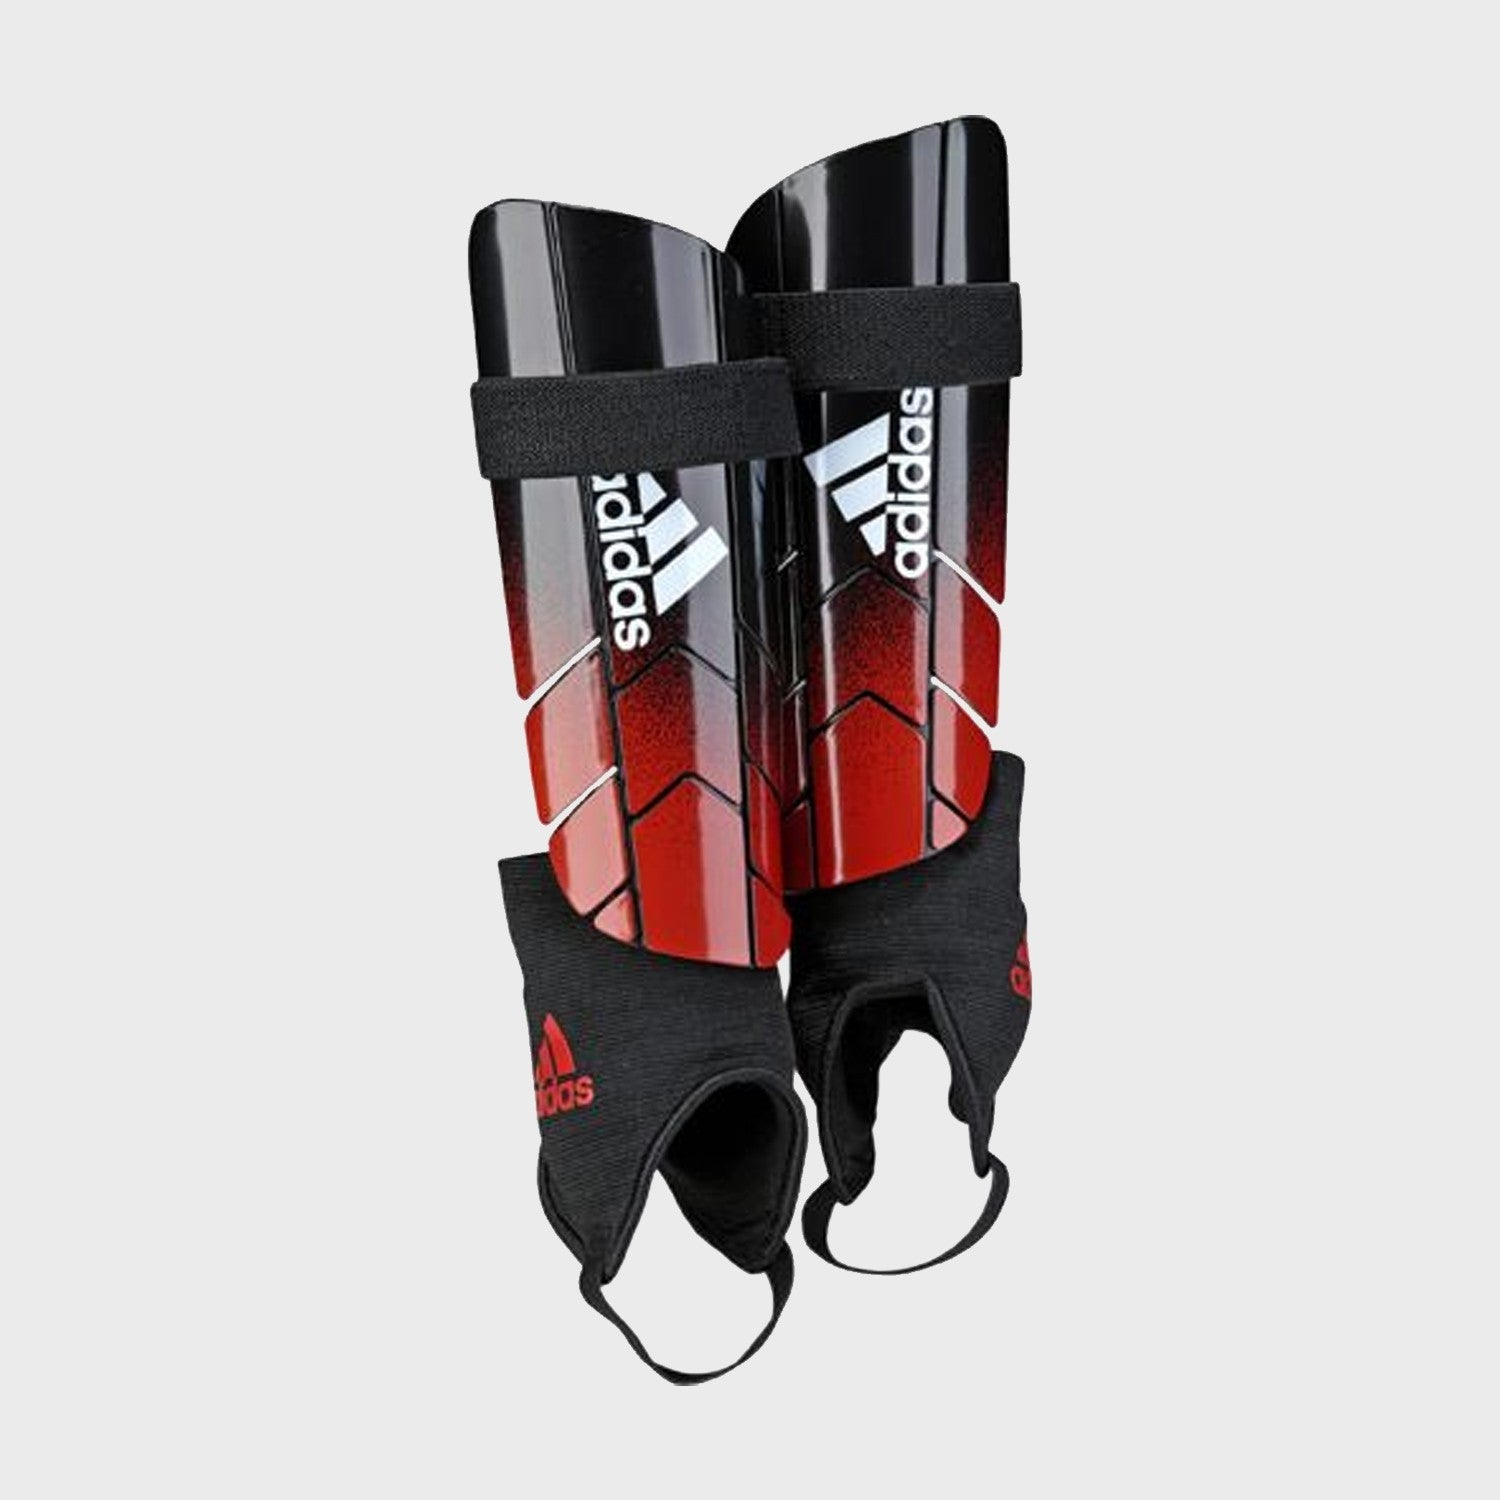 Adult's Ghost Reflex Shin Guards - Black/Red